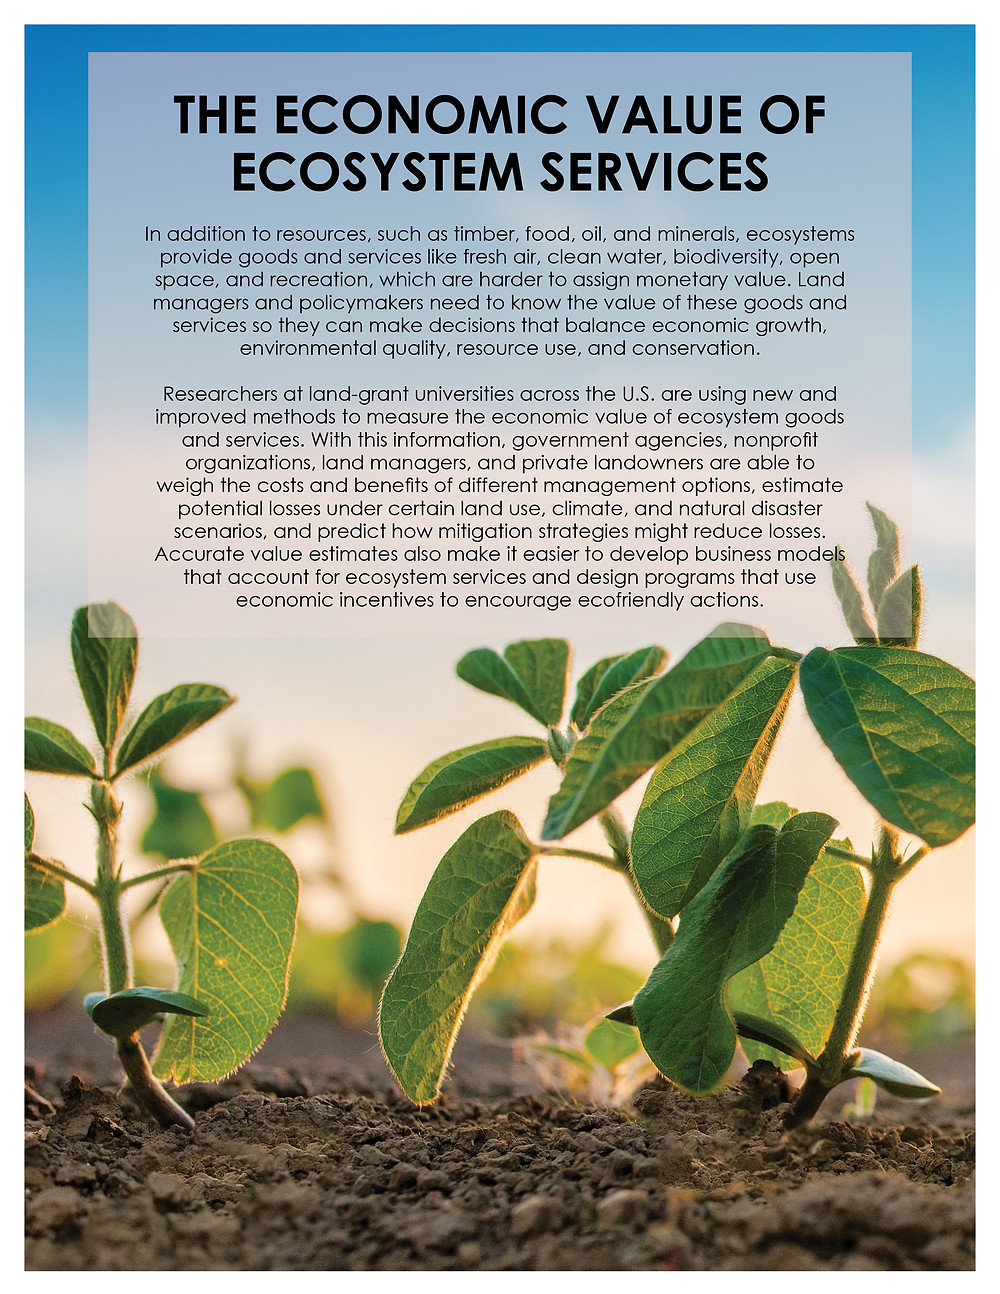 The Economic Value of Ecosystem Services. Click to view/download a PDF of the Impact Statement.